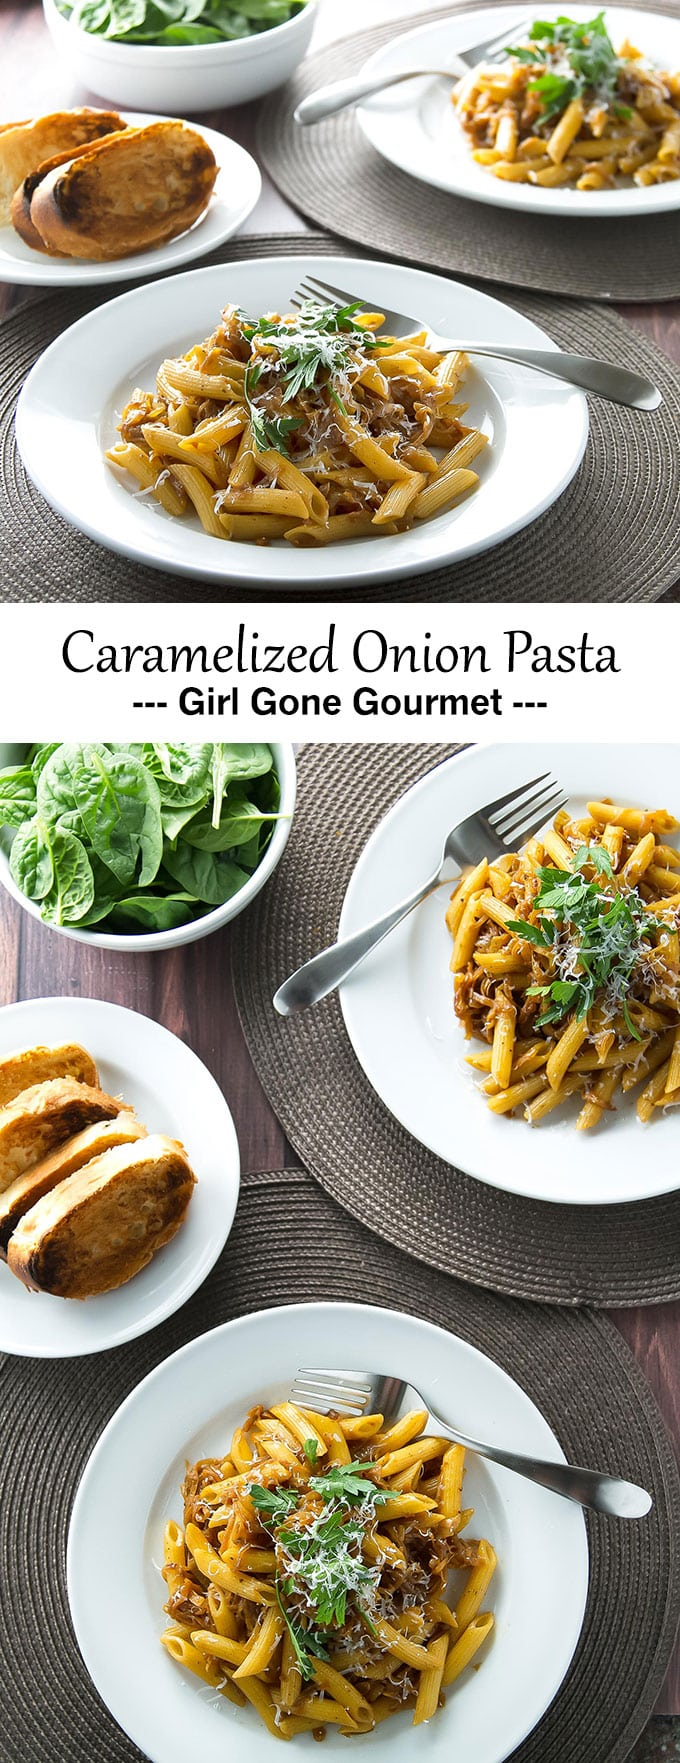 French onion soup meets pasta in this rich and savory dish! | girlgonegourmet.com